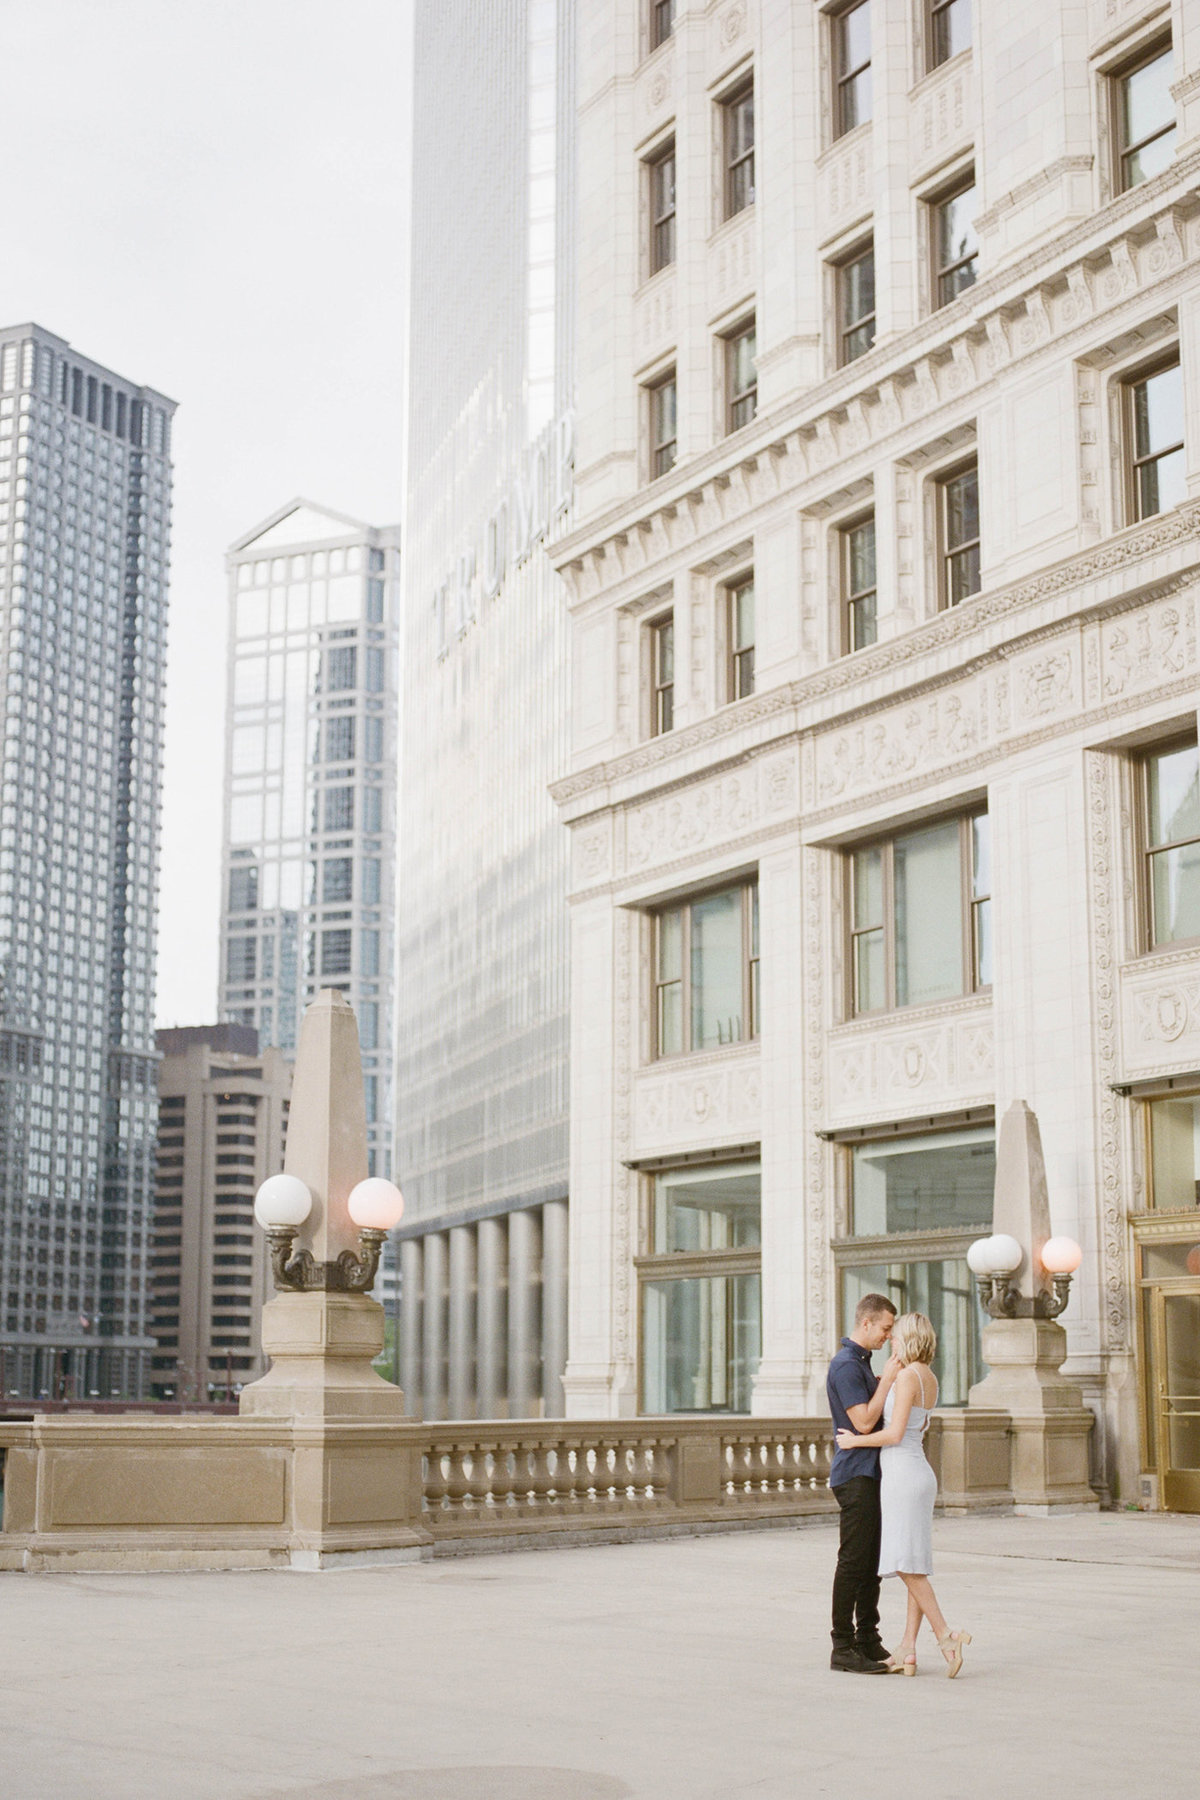 Chicago Wedding Photographer - Fine Art Film Photographer - Sarah Sunstrom - Sam + Morgan - Engagement Session - 21